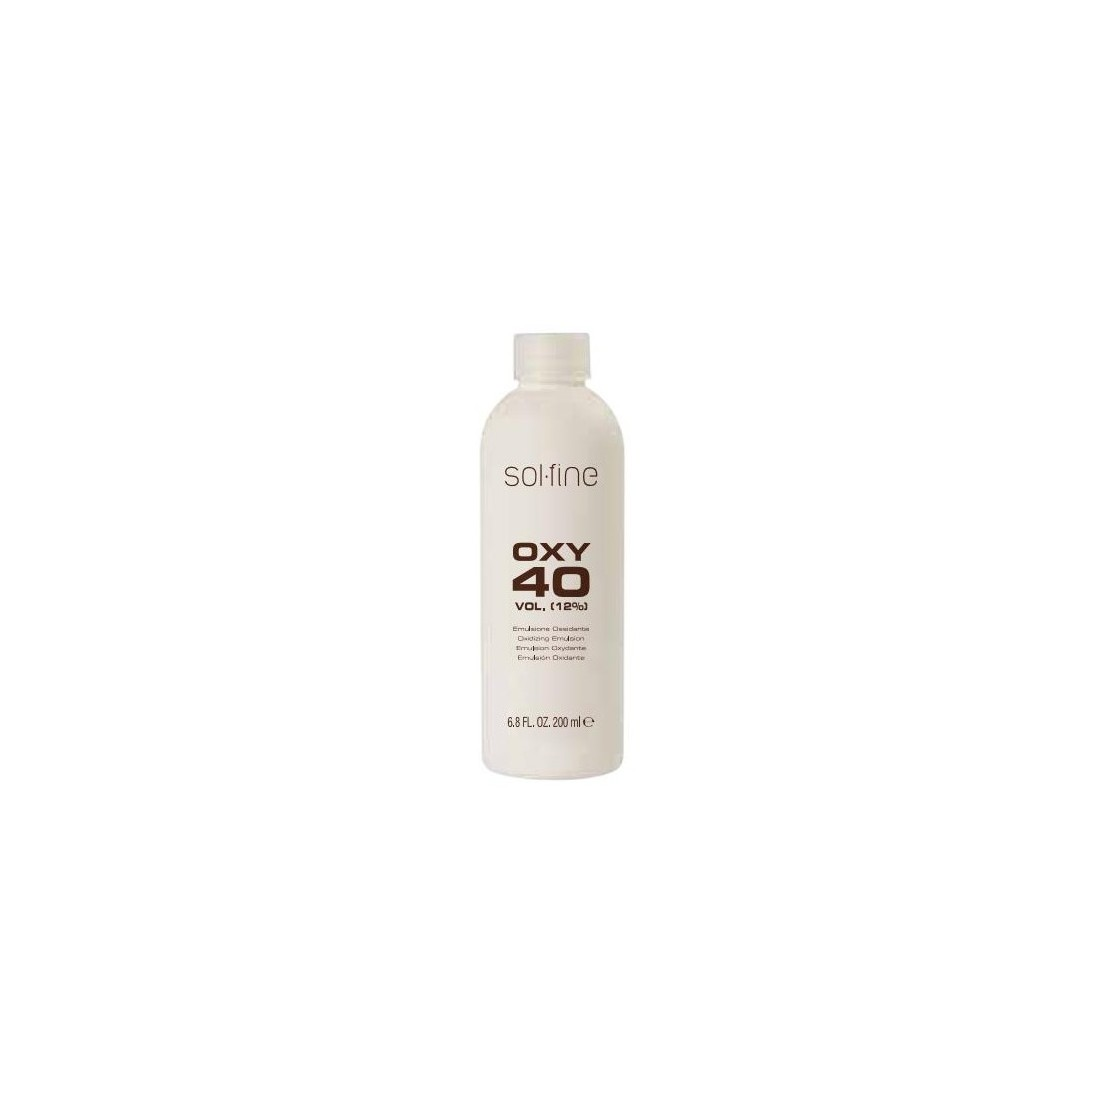 EMULSION OXYDANTE 200 ml SOL.FINE 40 VOL